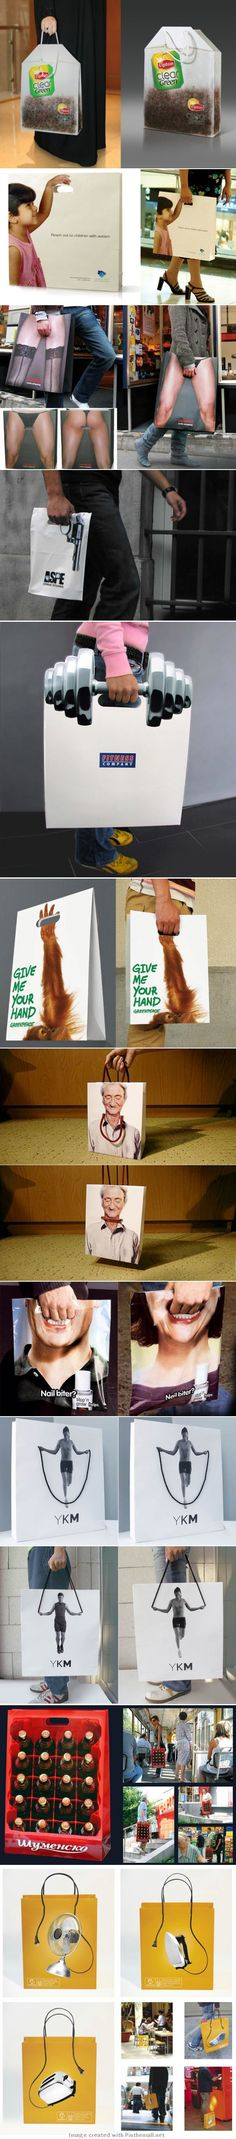 Shopping bag advertising ideas